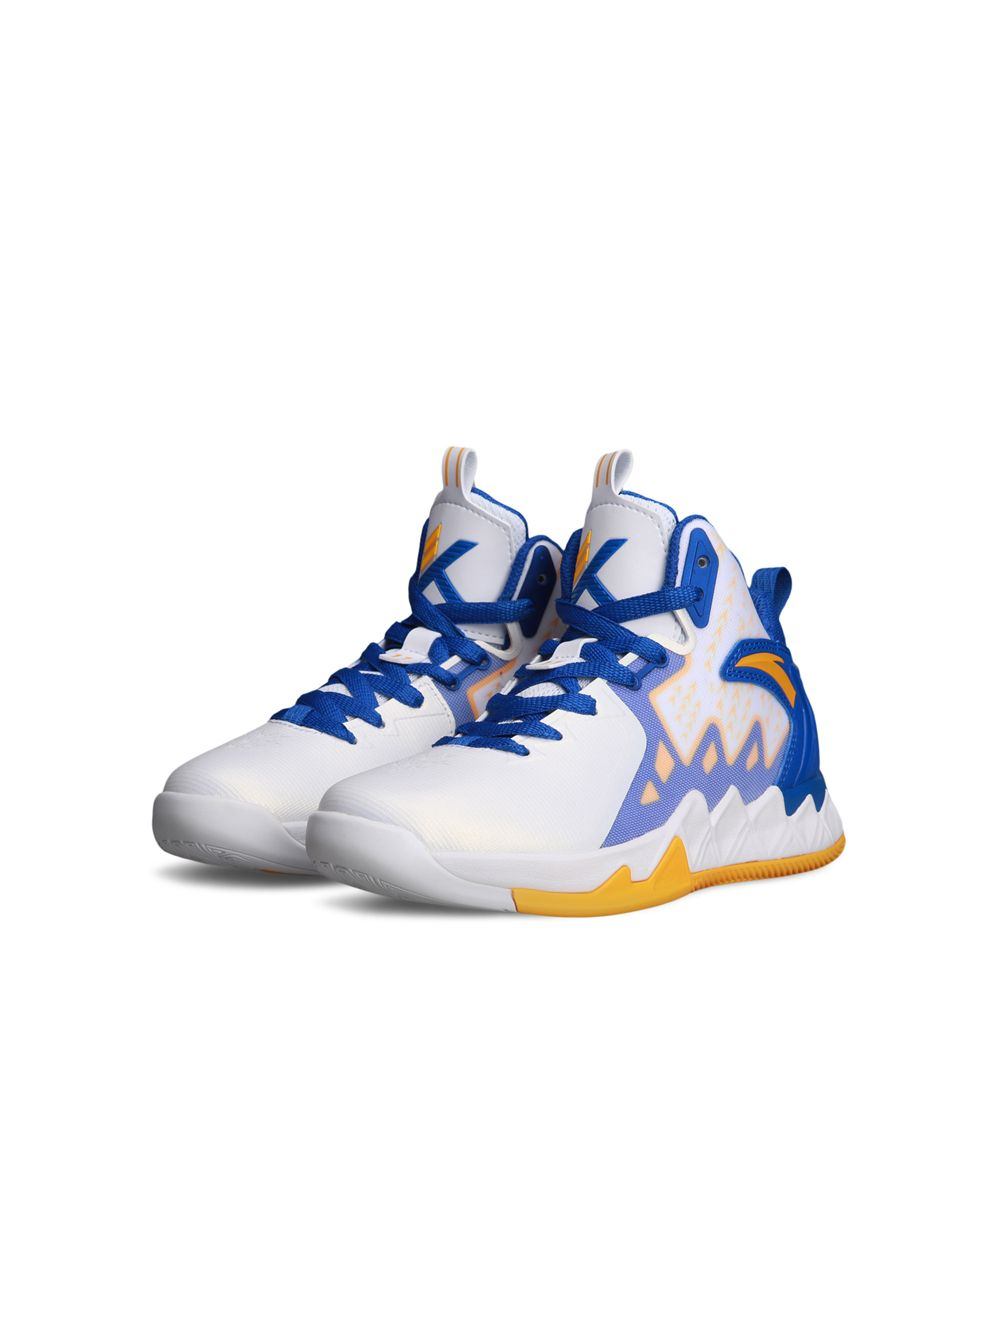 Golden State Warriors Home Basketball Shoes